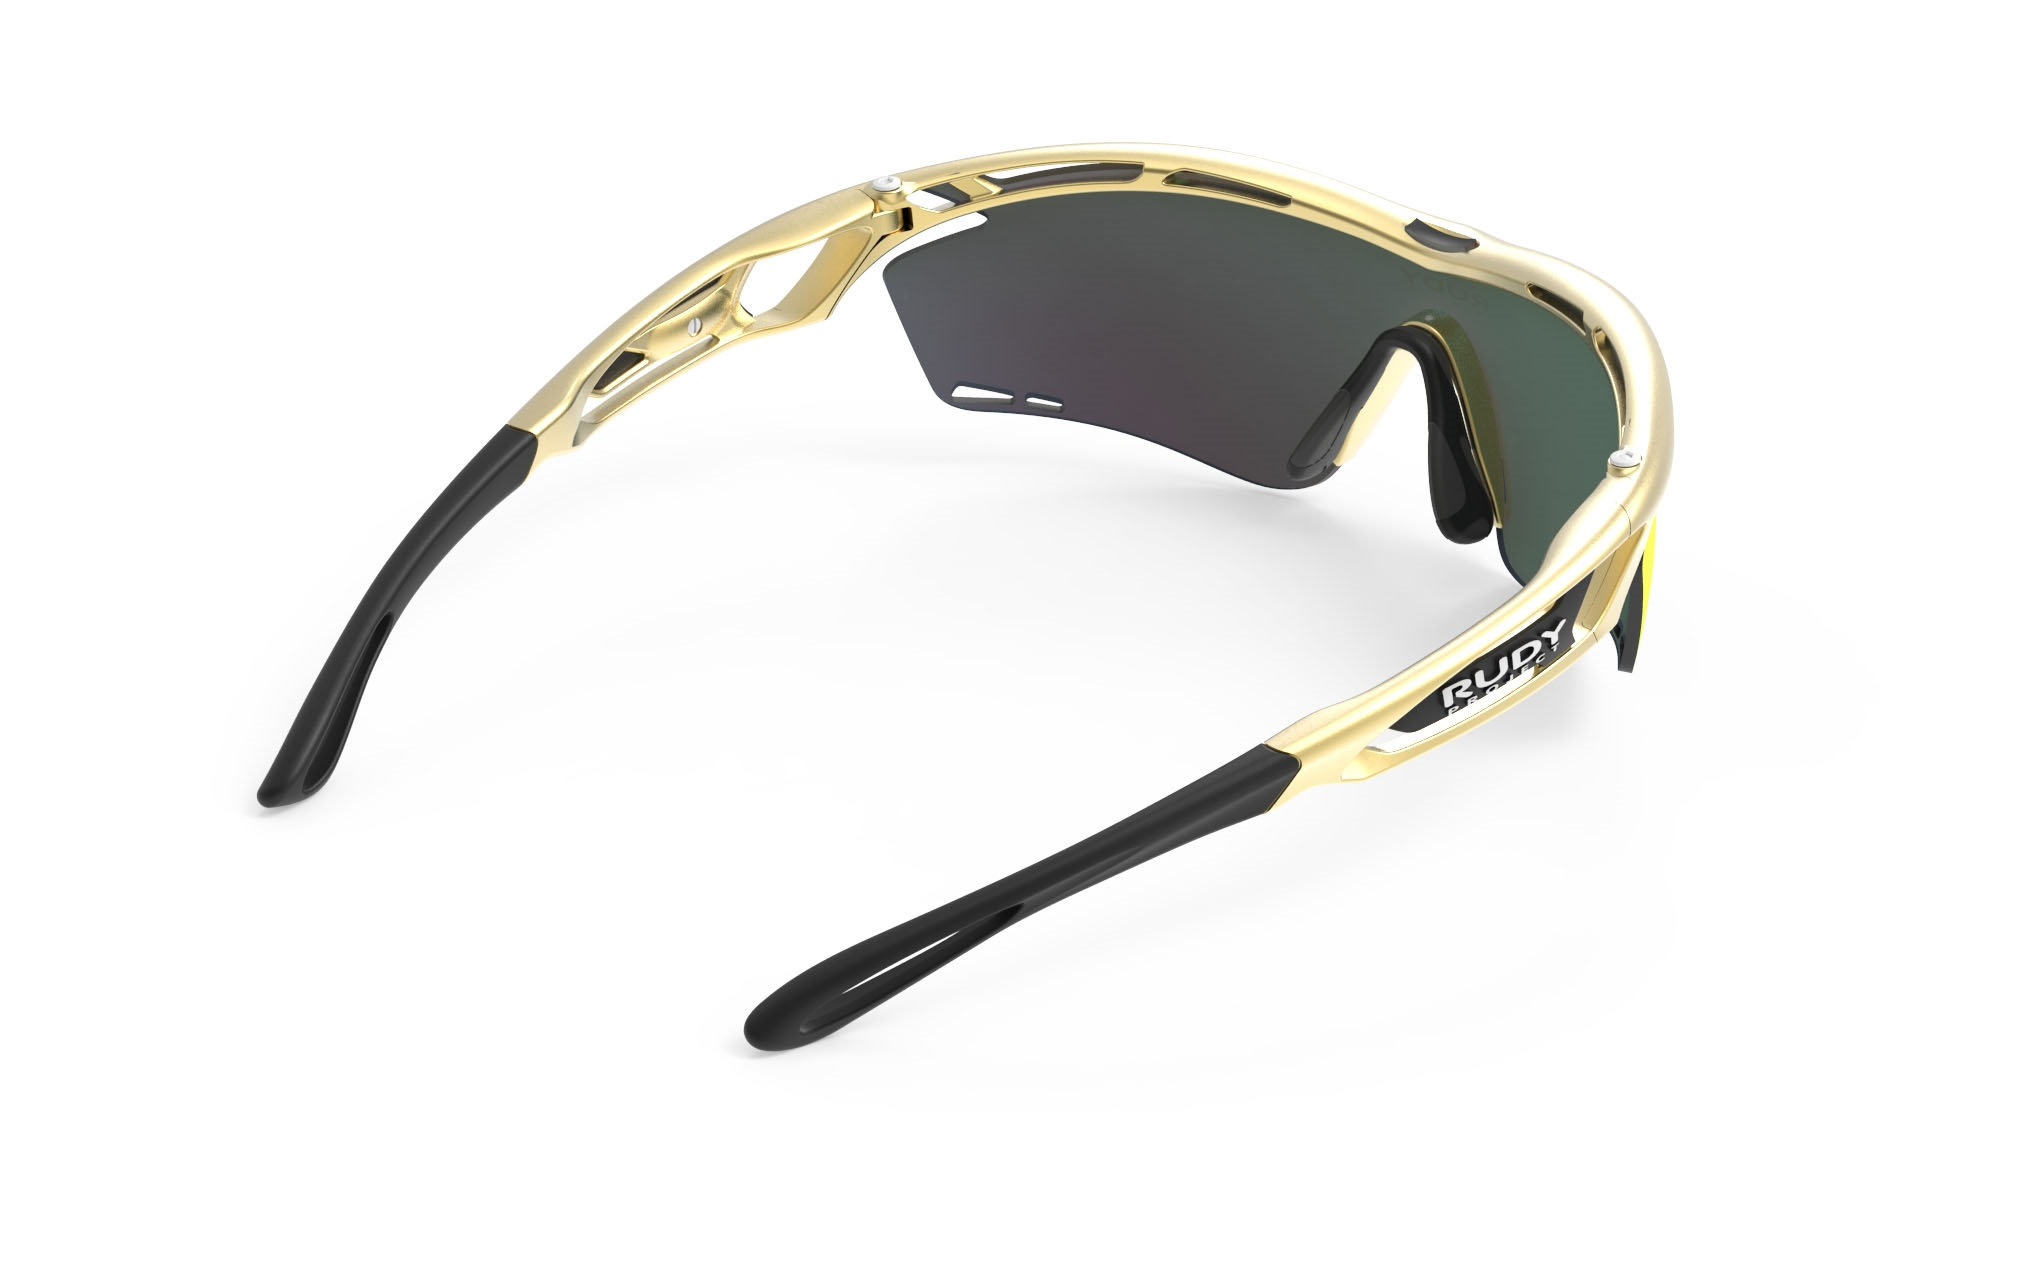 d5283d0b38 Performance Eyewear Tralyx - Rudy Project